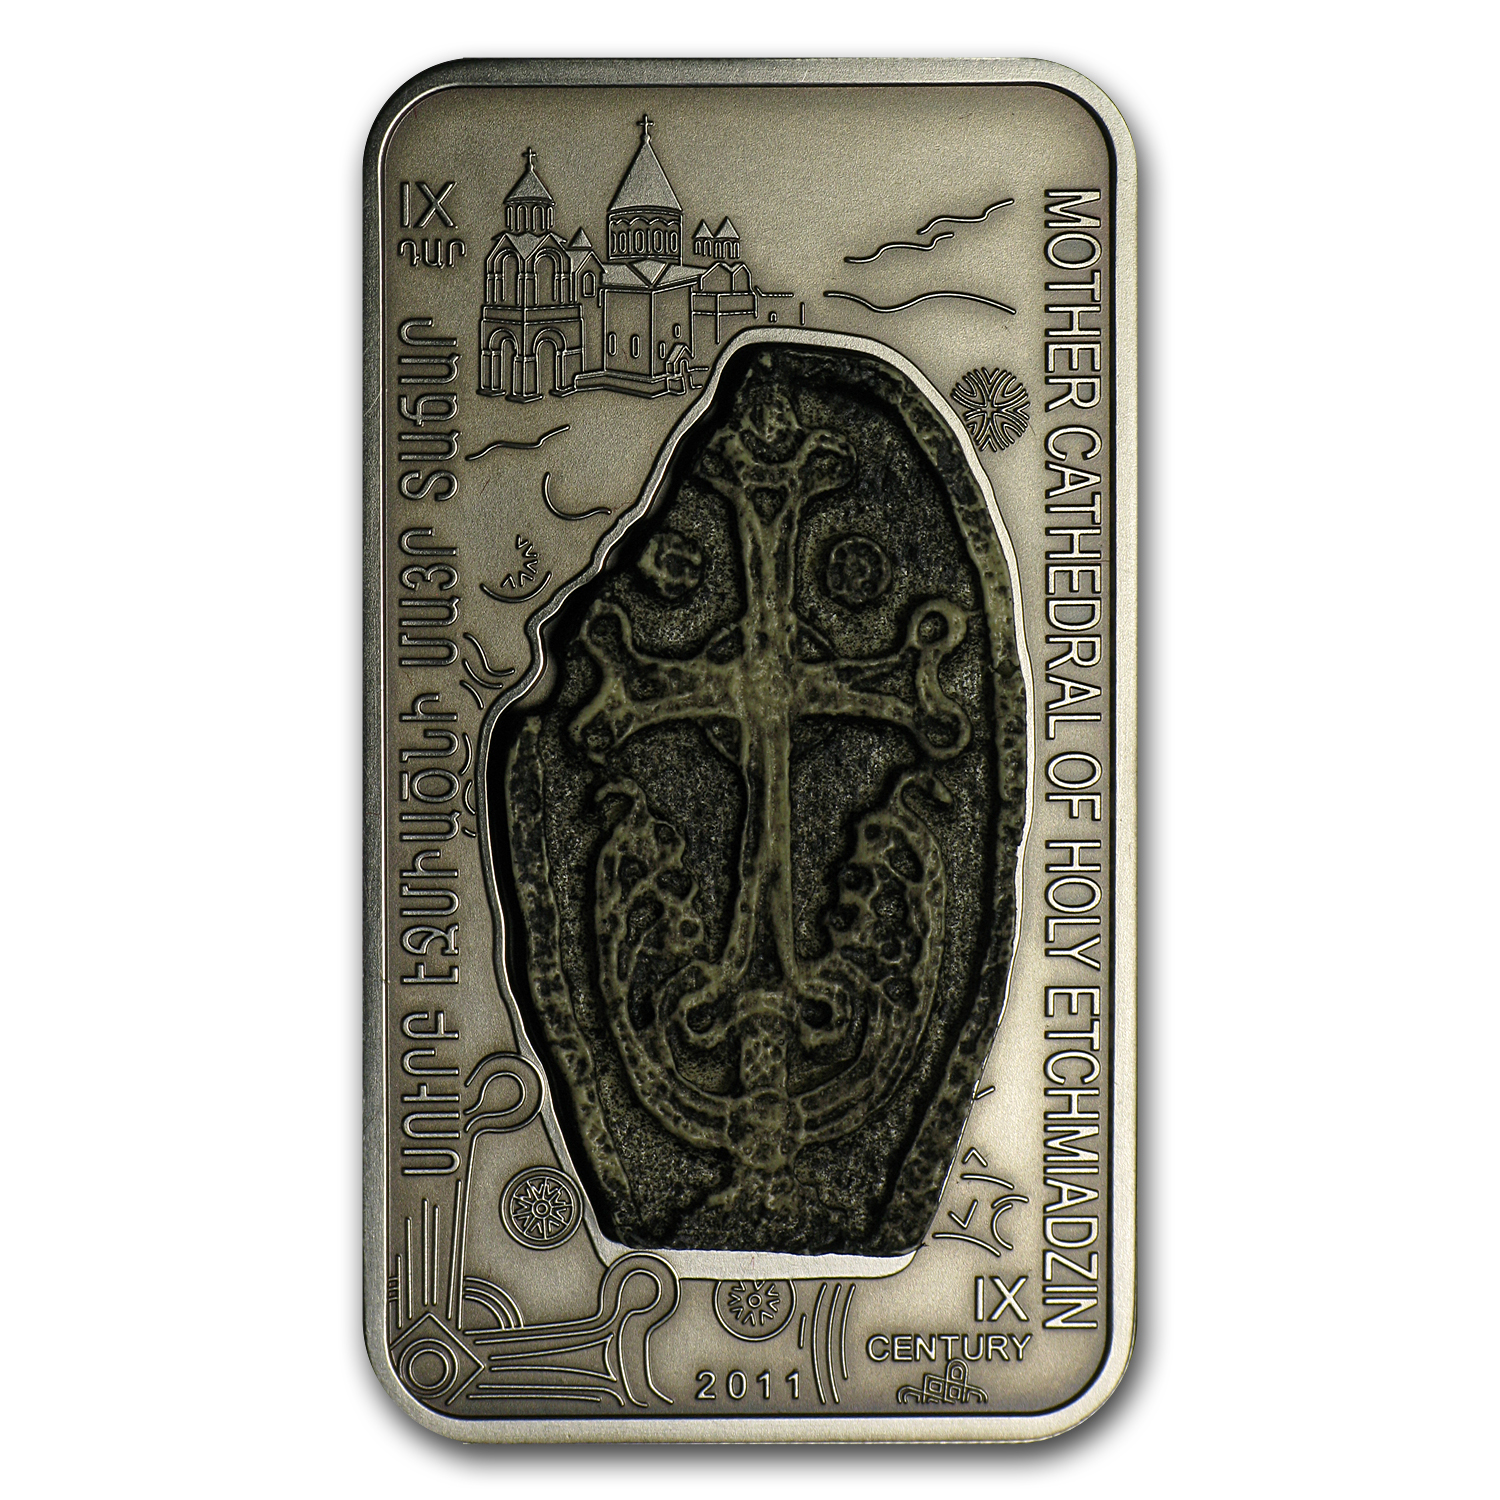 2011 Armenia 1000 Dram Cross-Stones of Armenia The Etchmiadzin